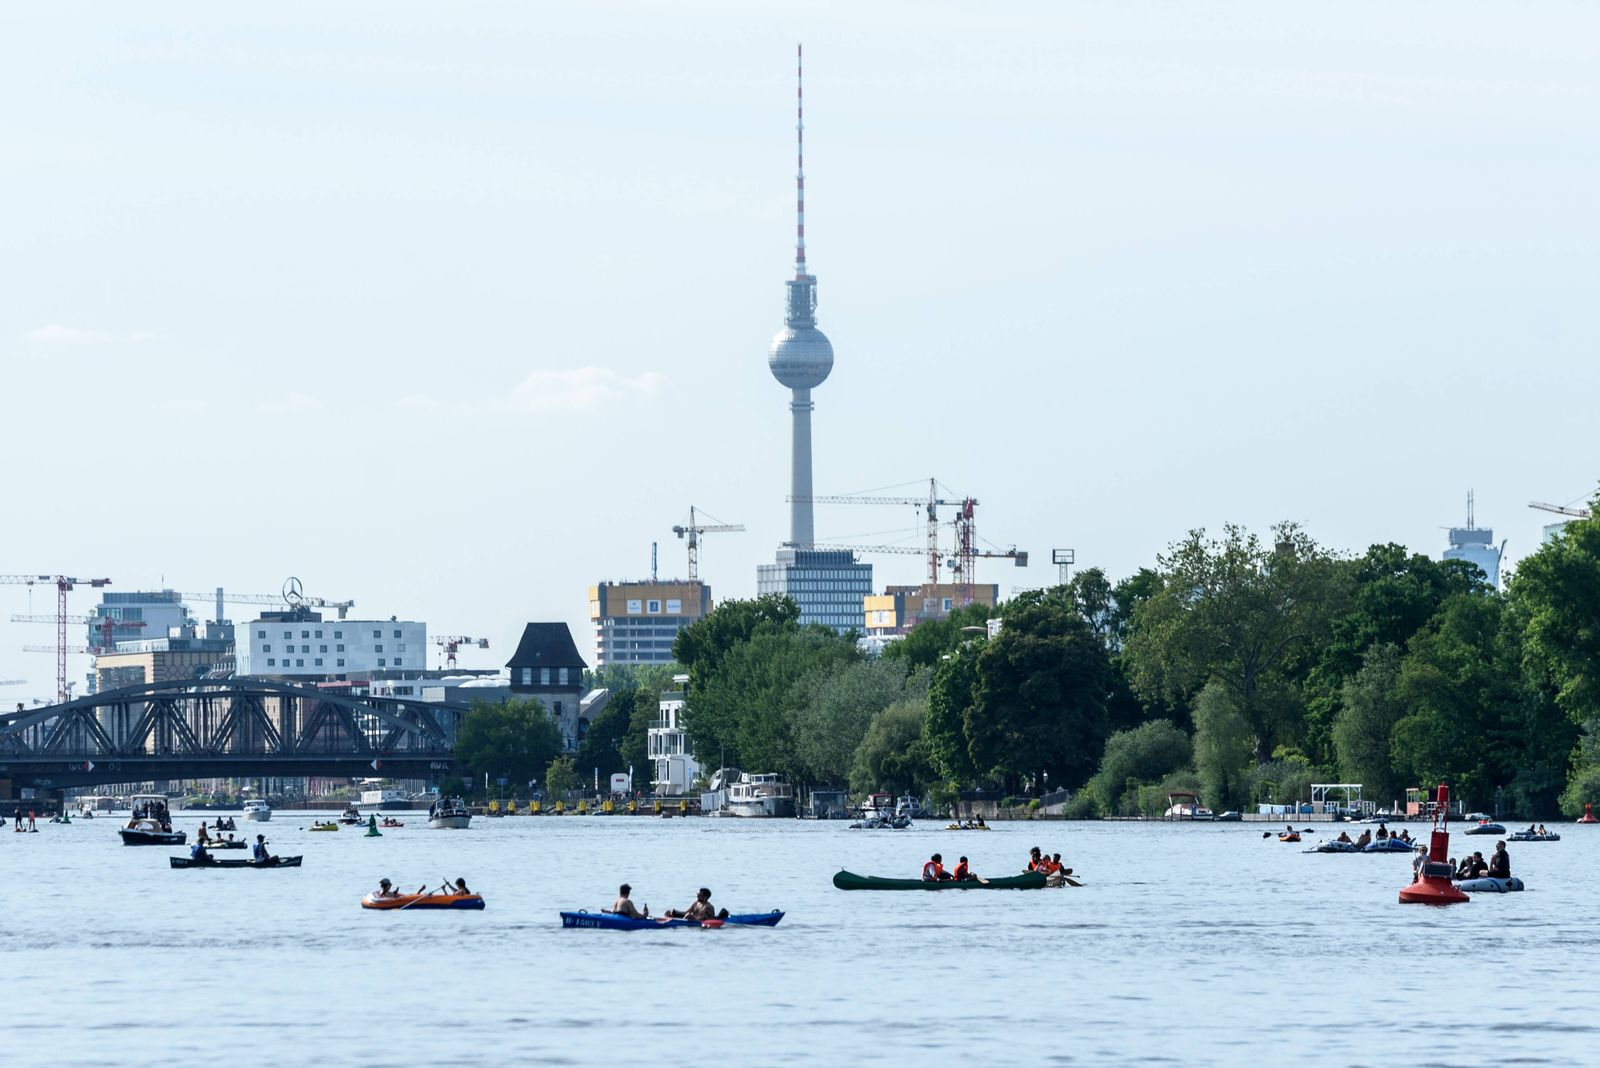 News Bilder des Tages Viele Boote auf der Spree am Treptower Park snapshot-photography/F.Boillot *** Many boats on the S